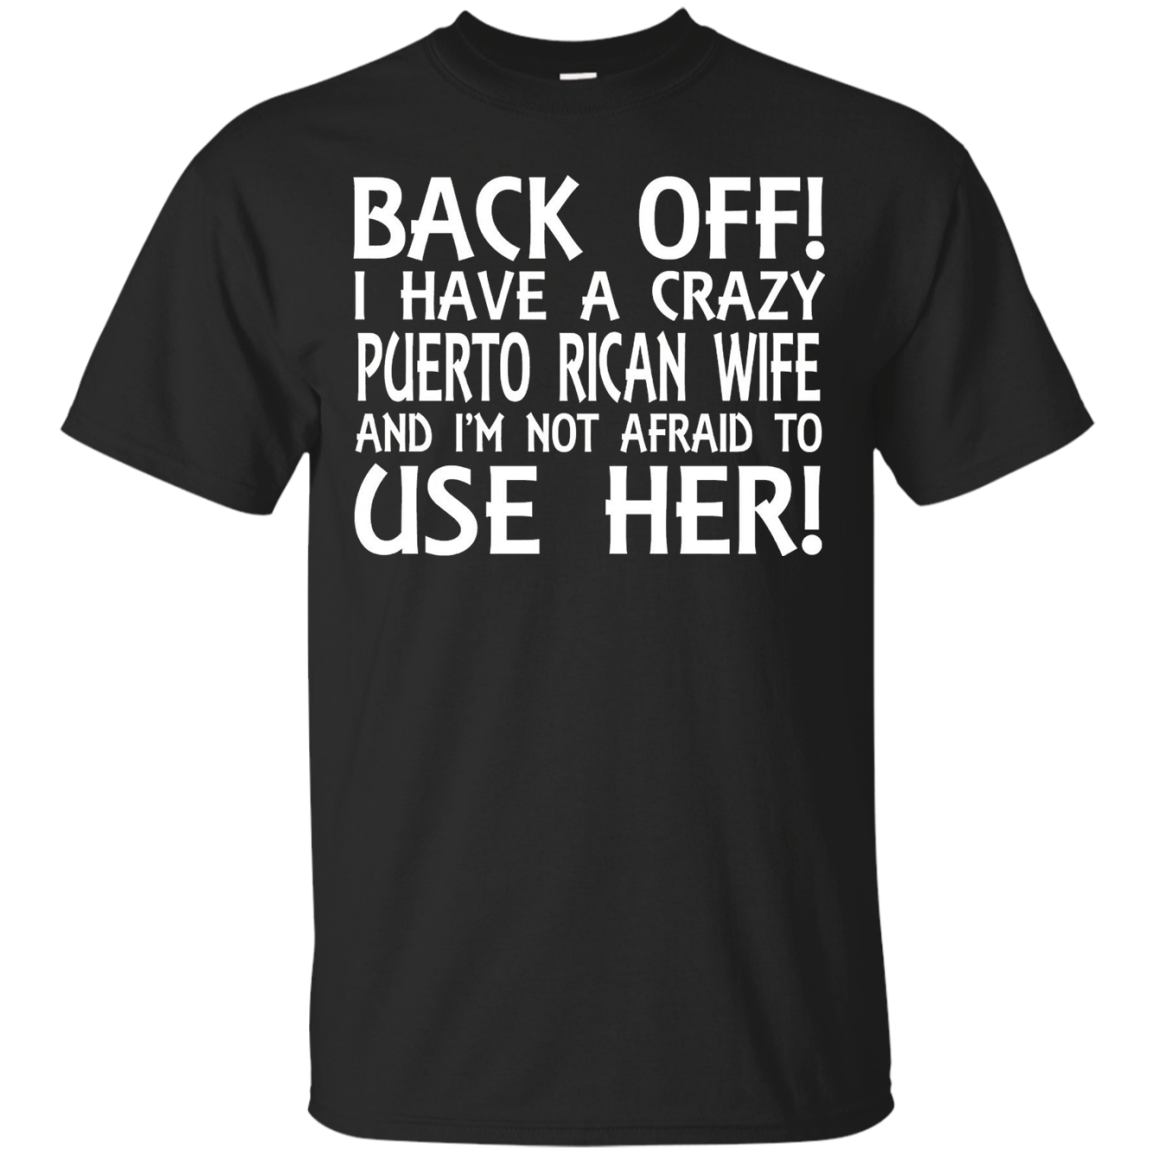 Men's I HAVE A CRAZY PUERTO RICAN WIFE